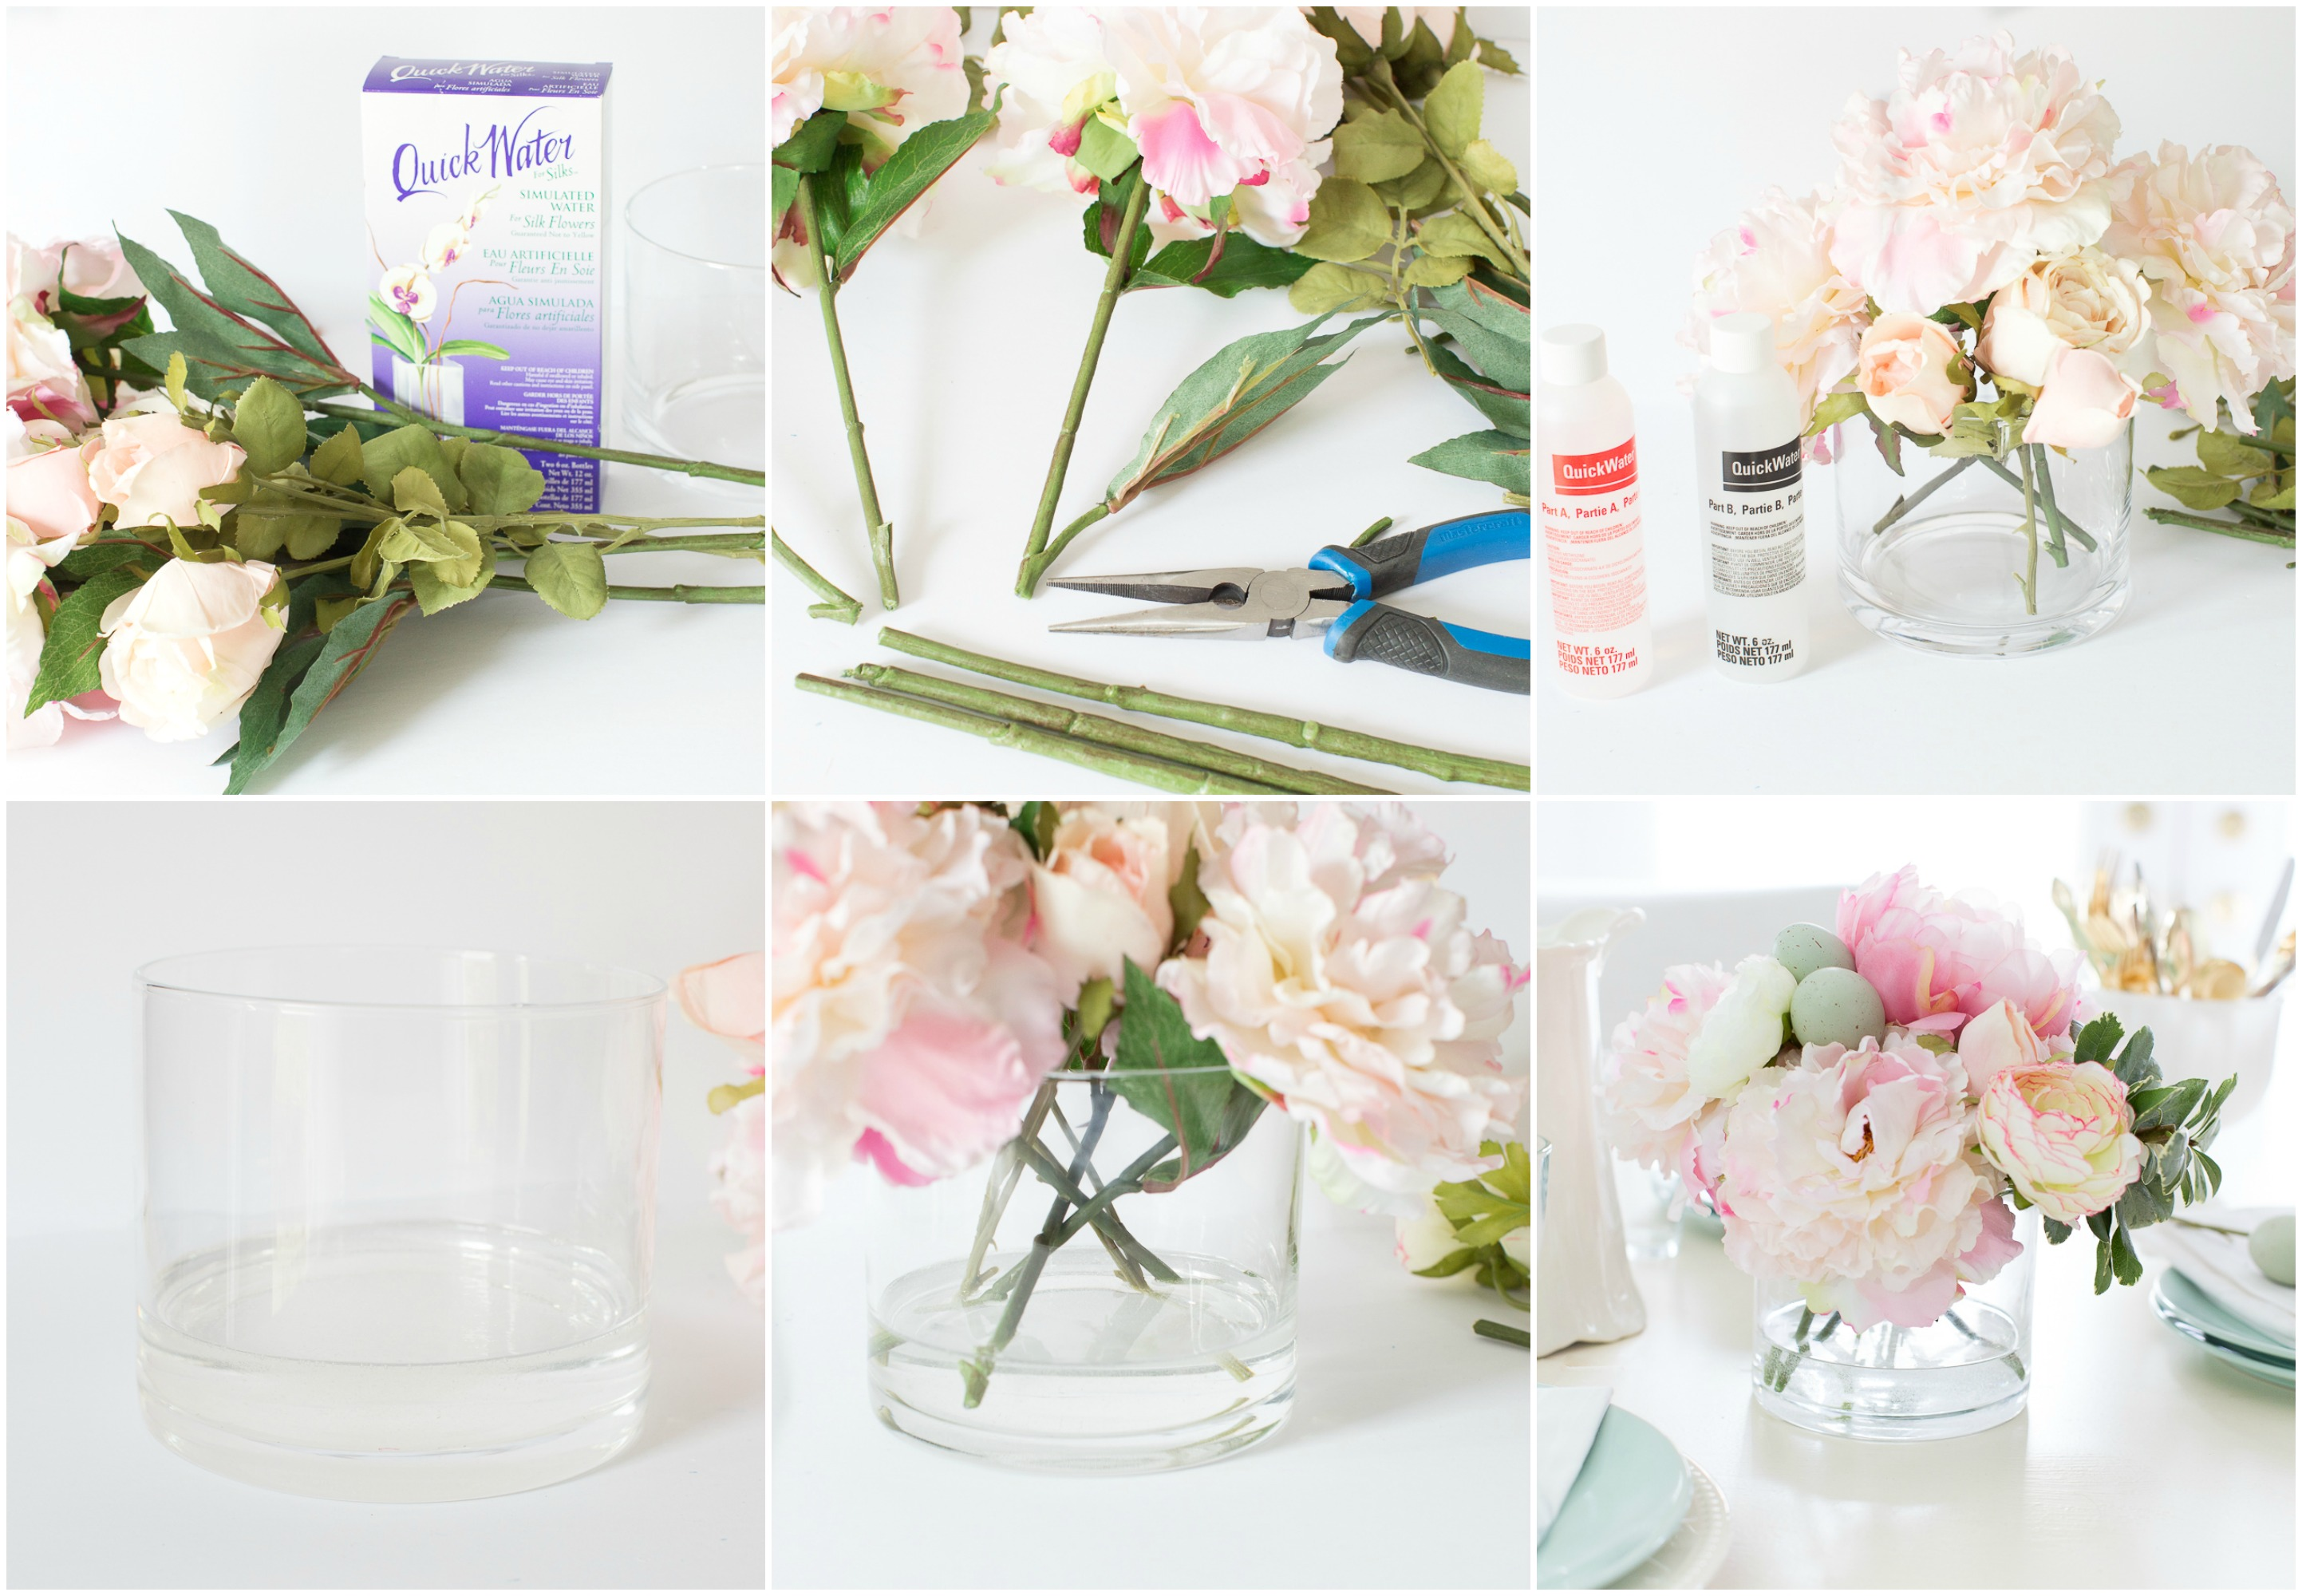 Diy faux water for artificial flowers fauxwaterforarticifialflowersdiy izmirmasajfo